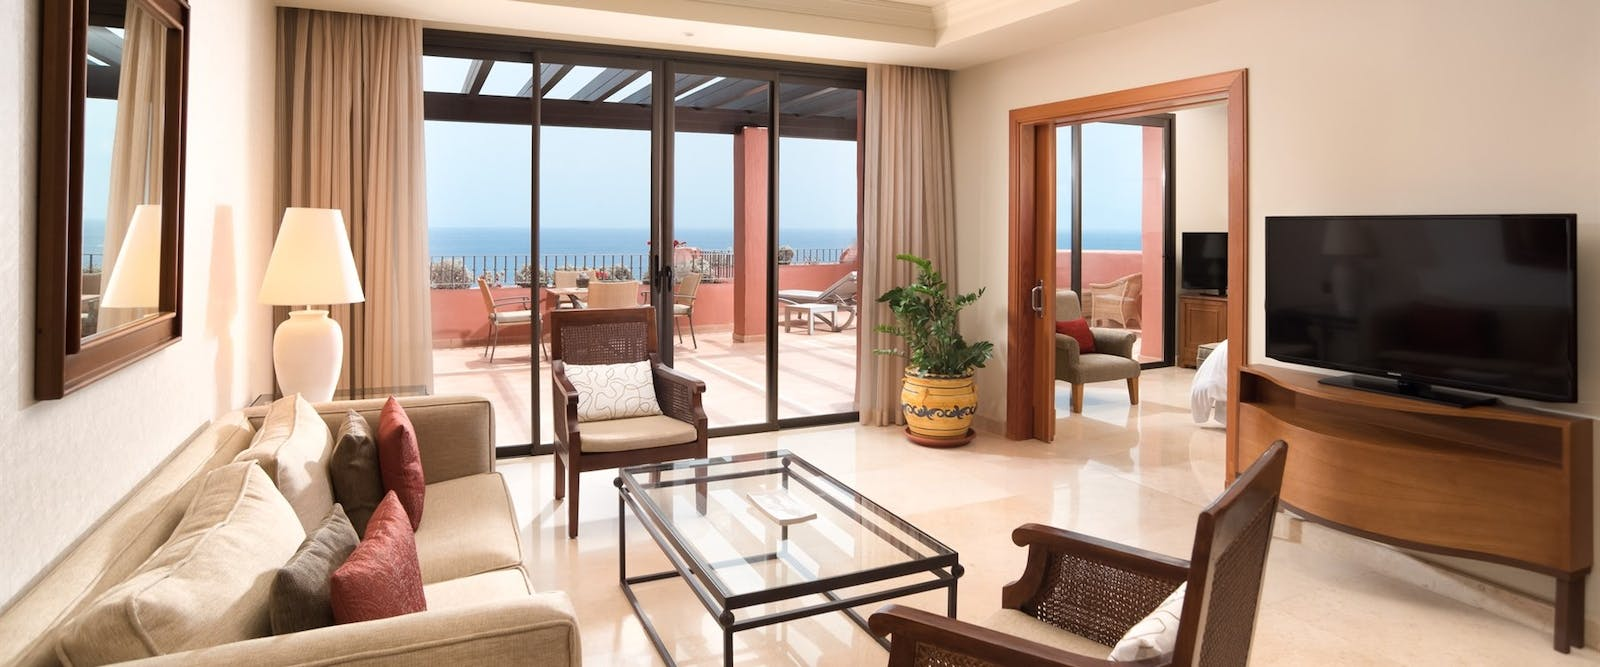 Suite Living Room at Sheraton La Caleta Resort, Tenerife